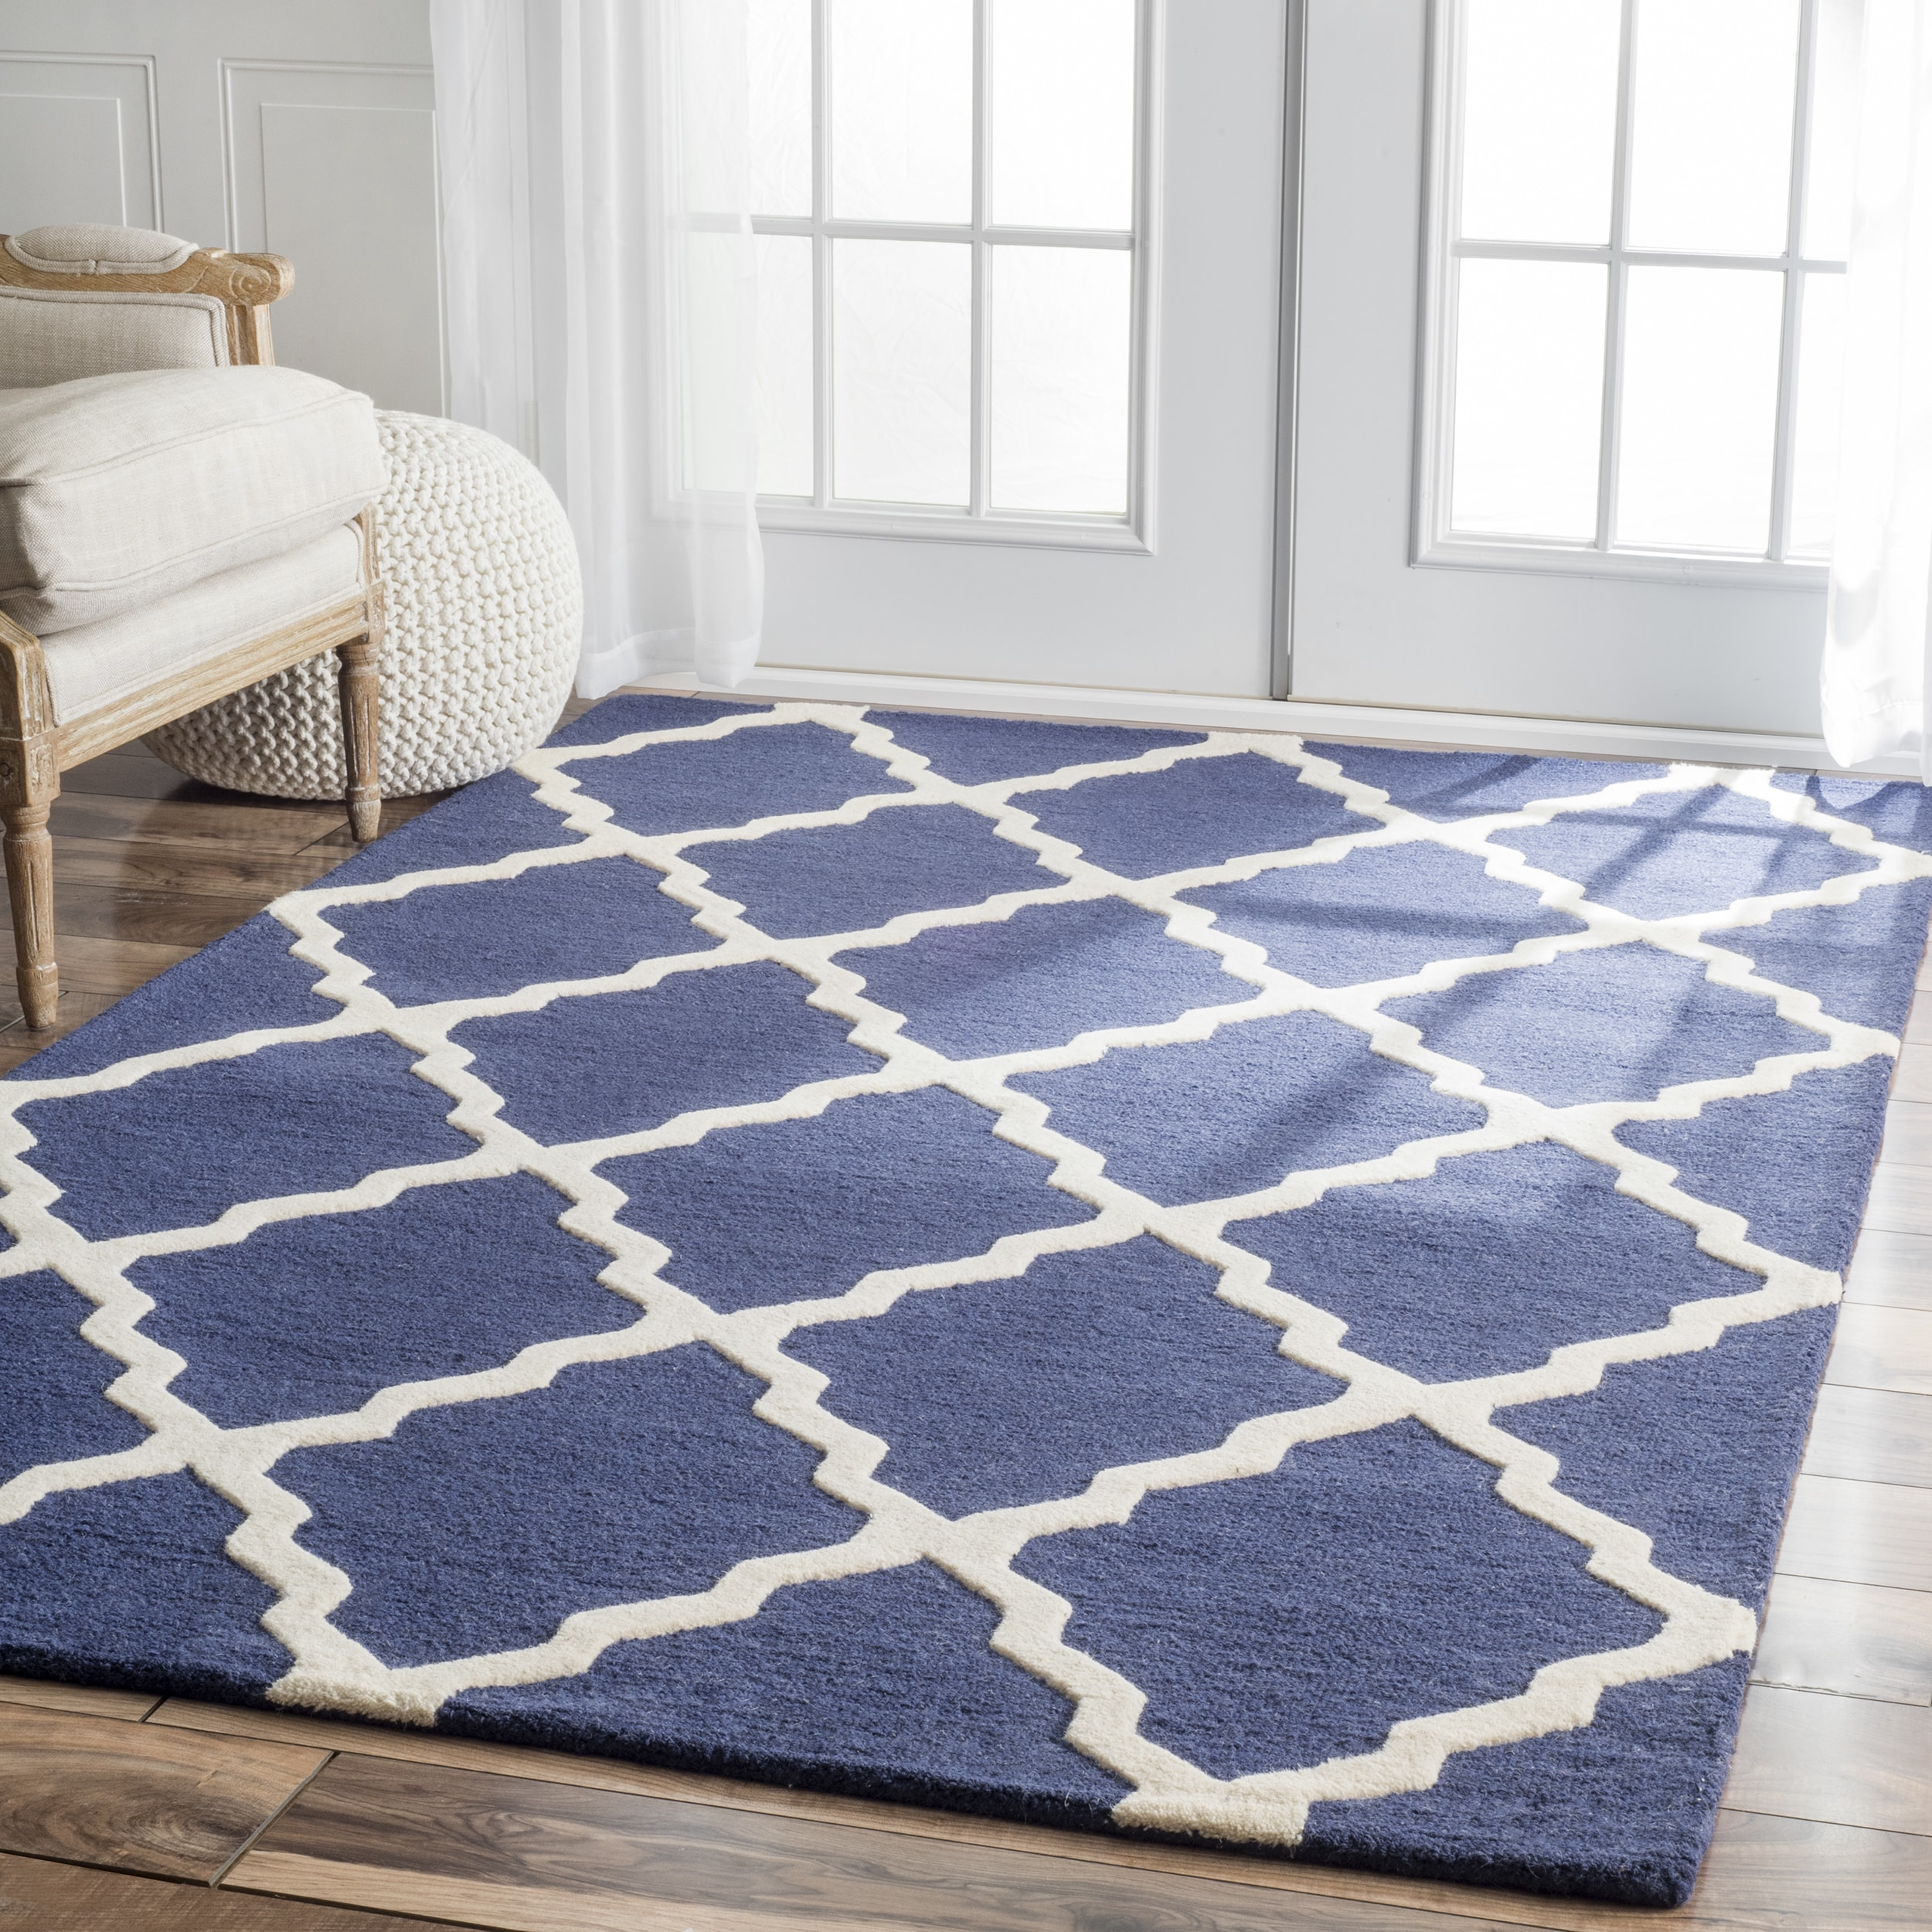 unique improvement lela hand june inspirational overstock rug wool nuloom made home photos rugs medallion pictures vintage of blue marrakech overdyed